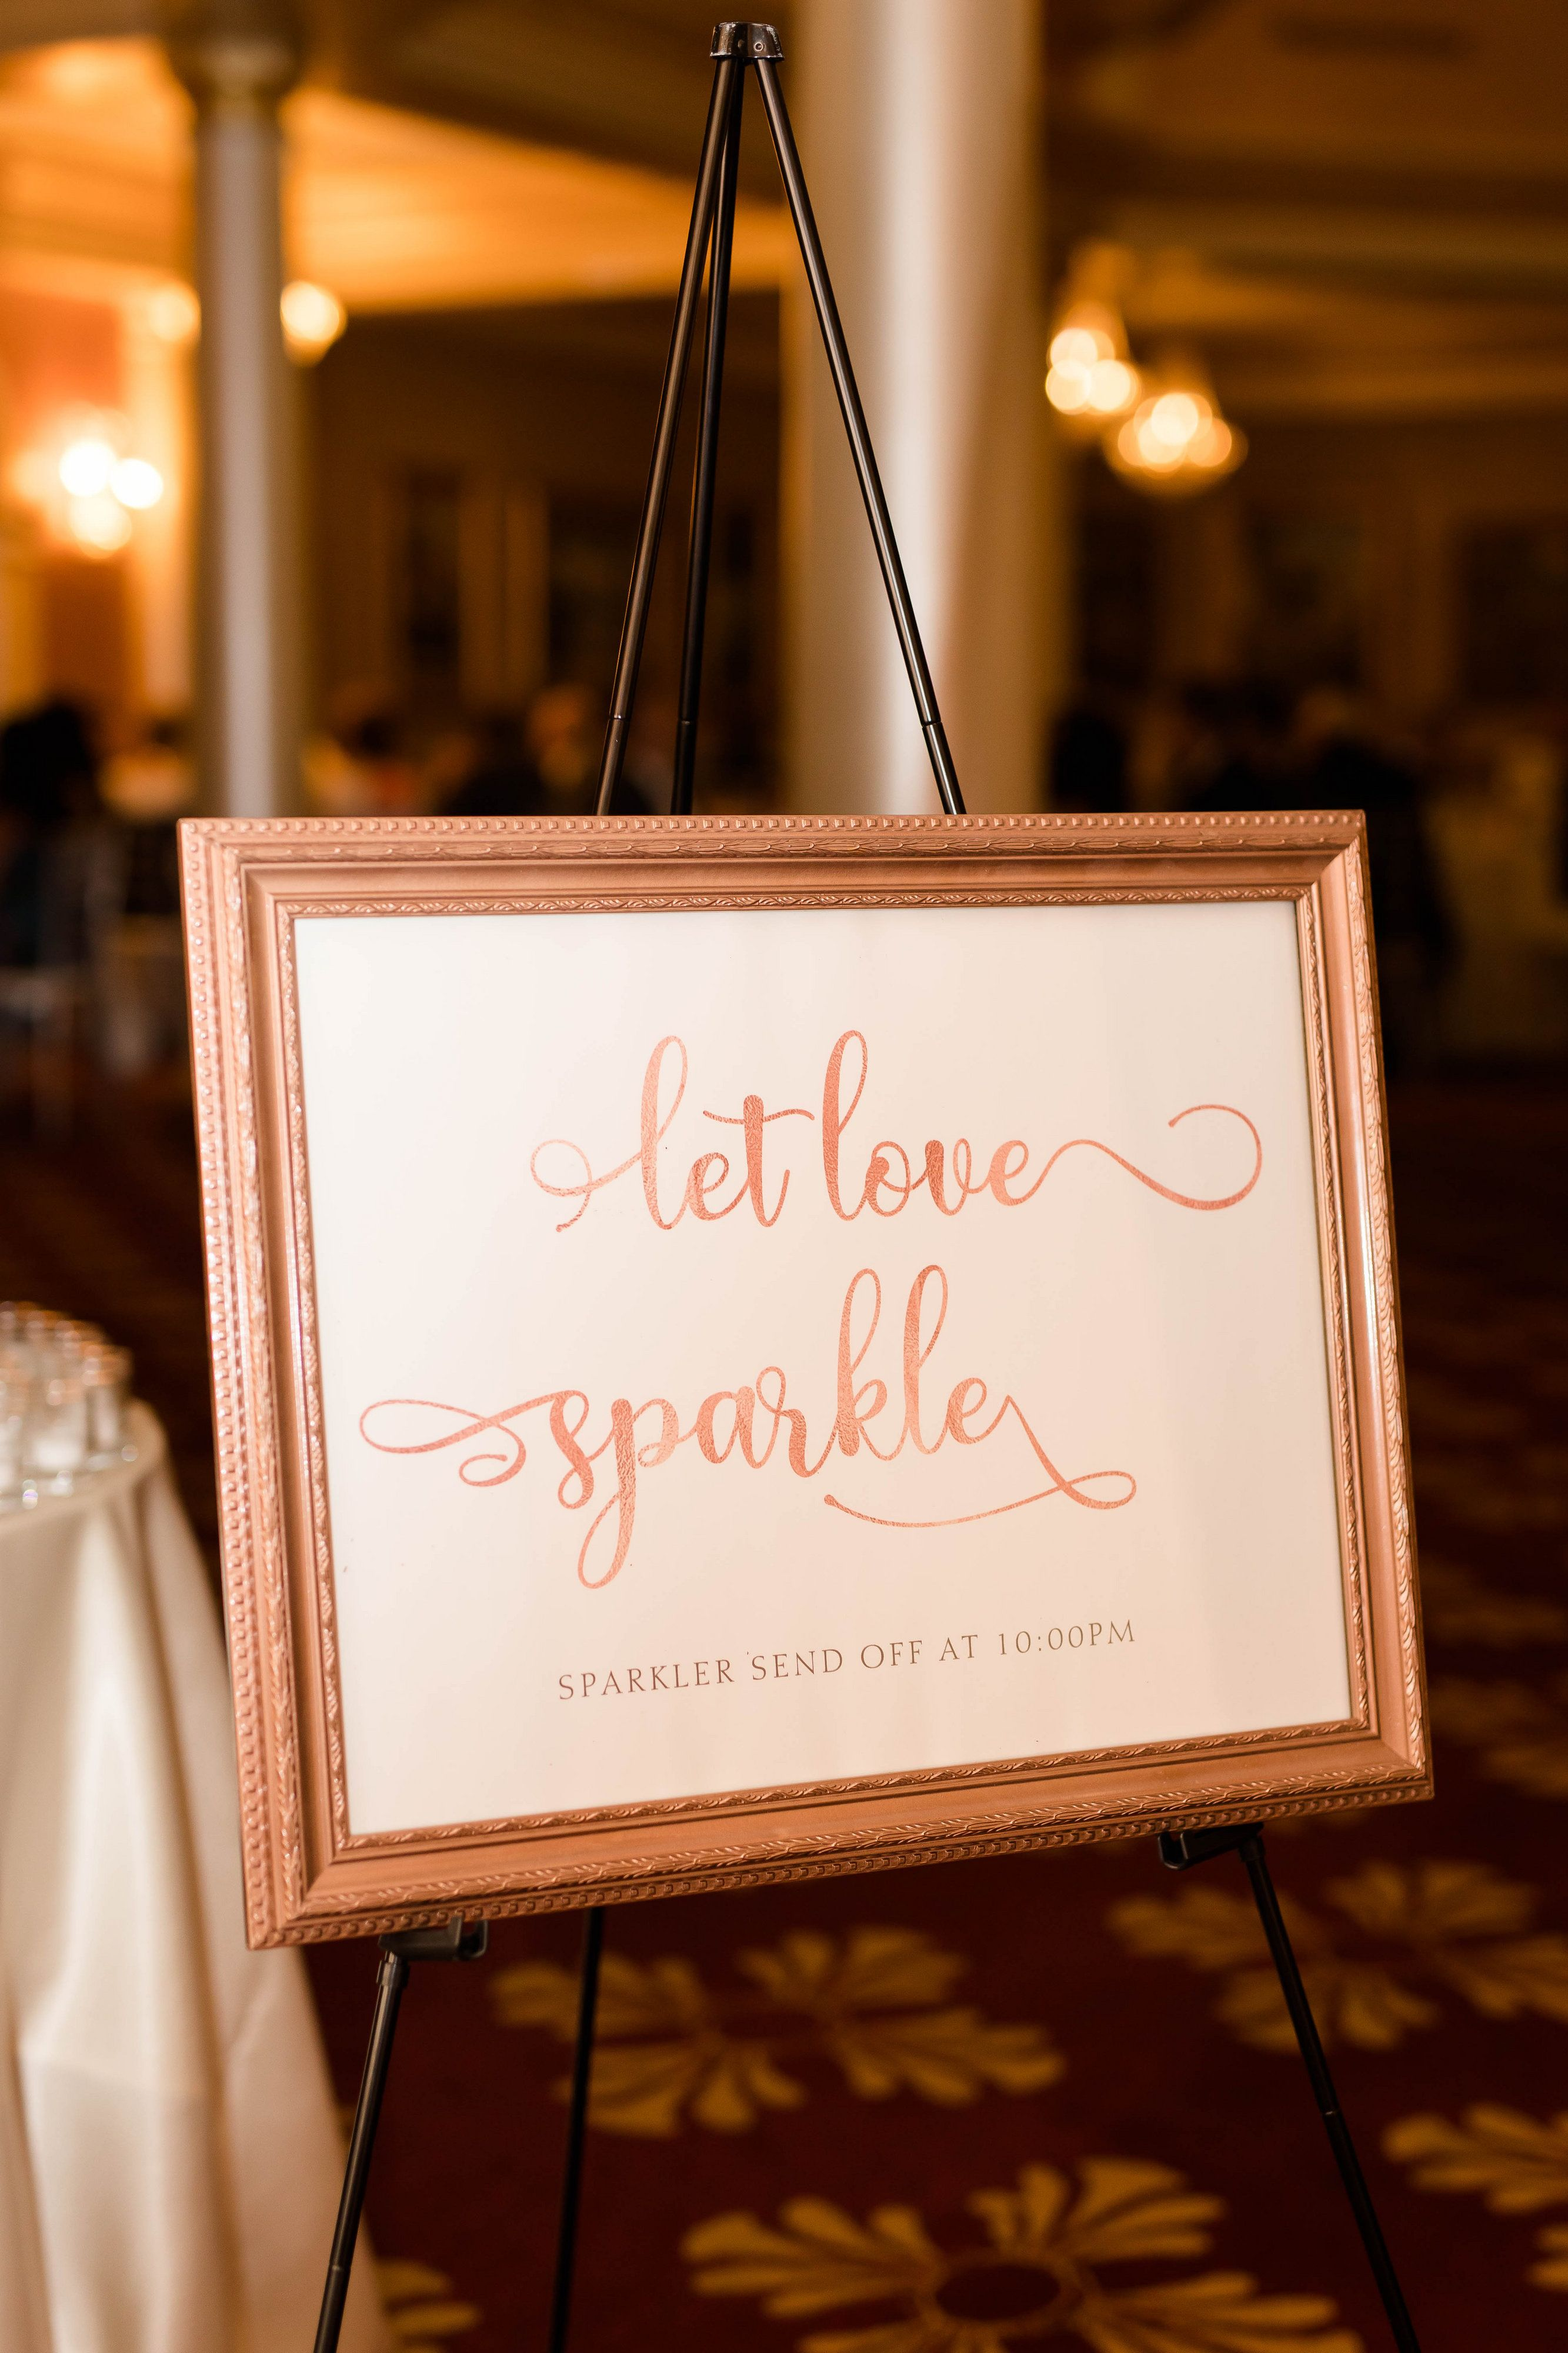 Pin by Hannah Young on wedding Sparkler send off